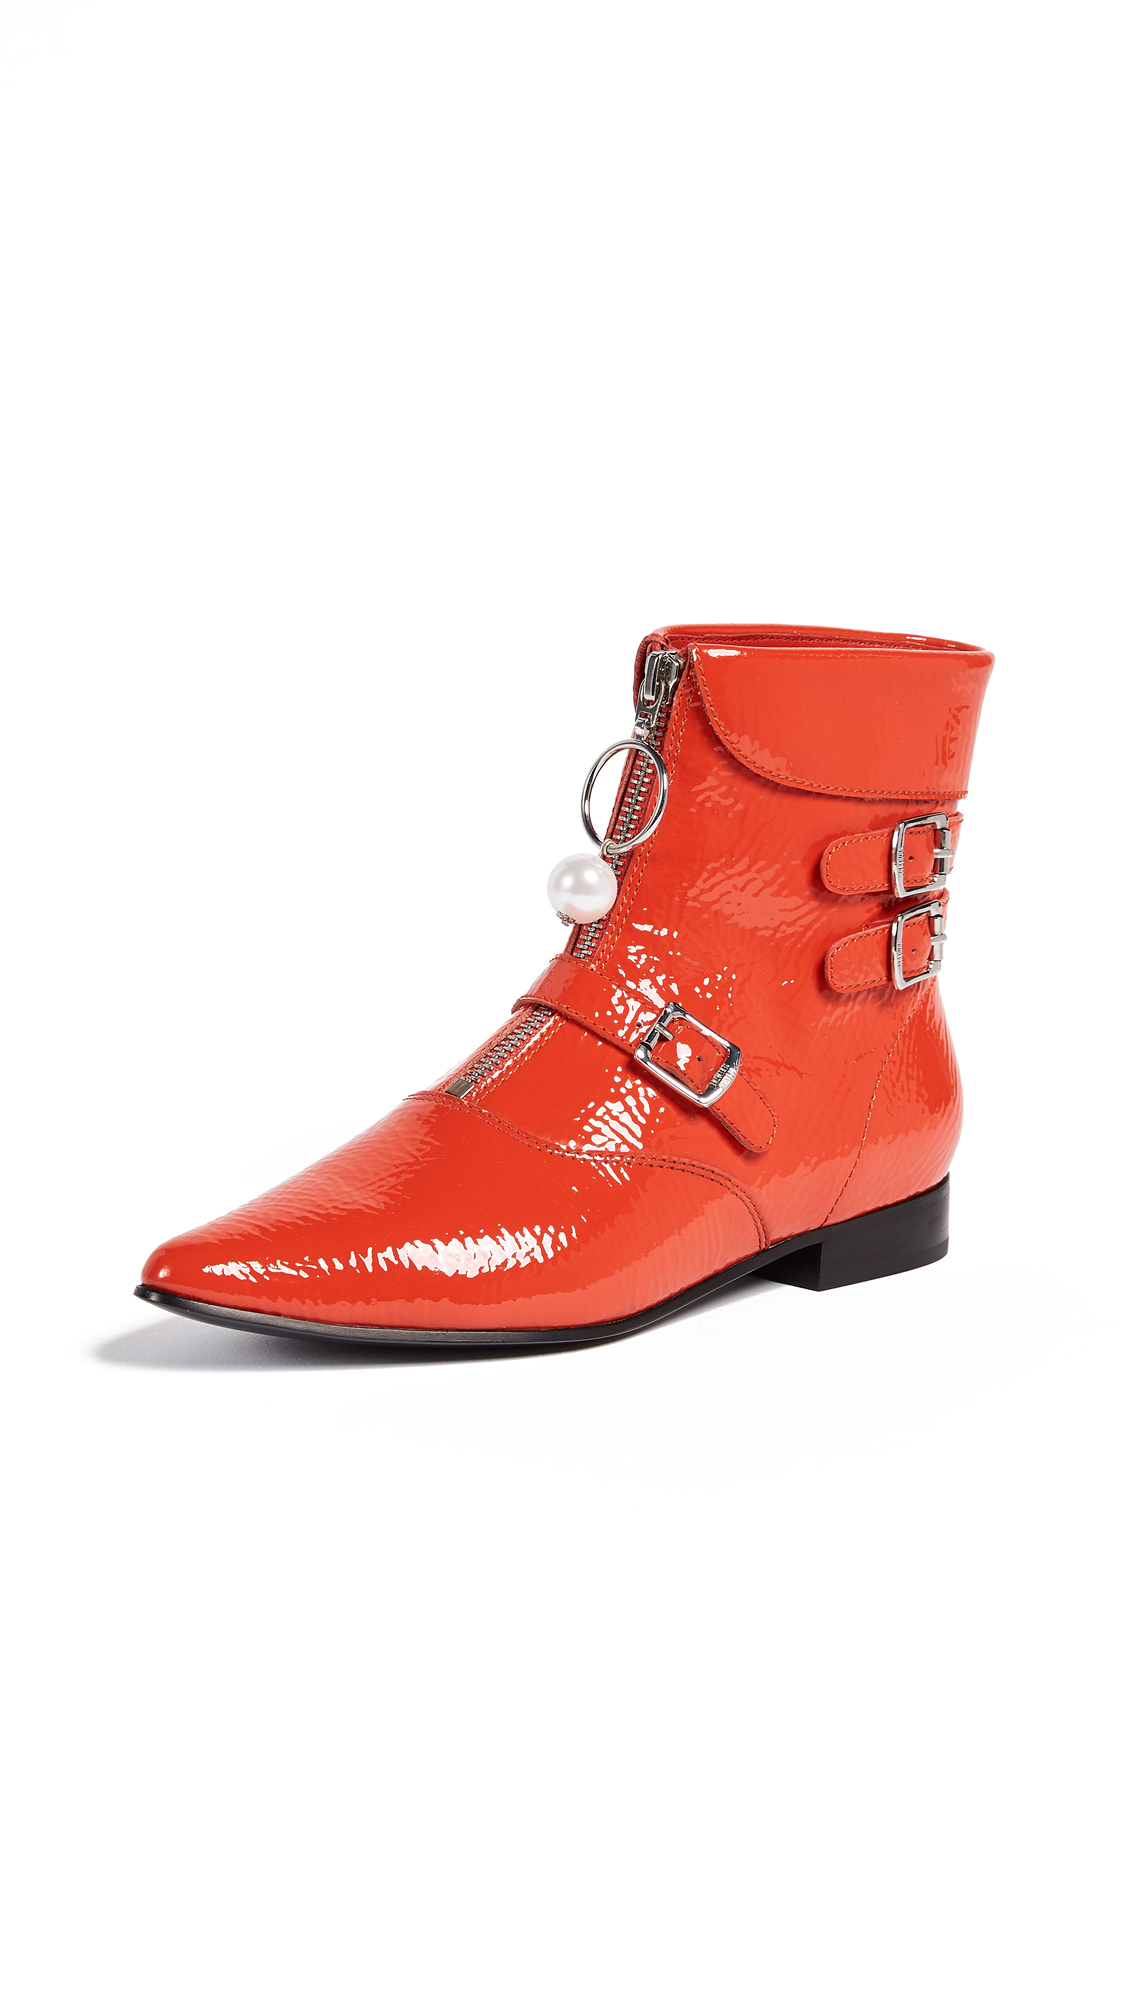 Opening Ceremony Slater Crackle Patent Booties - Jewel Red